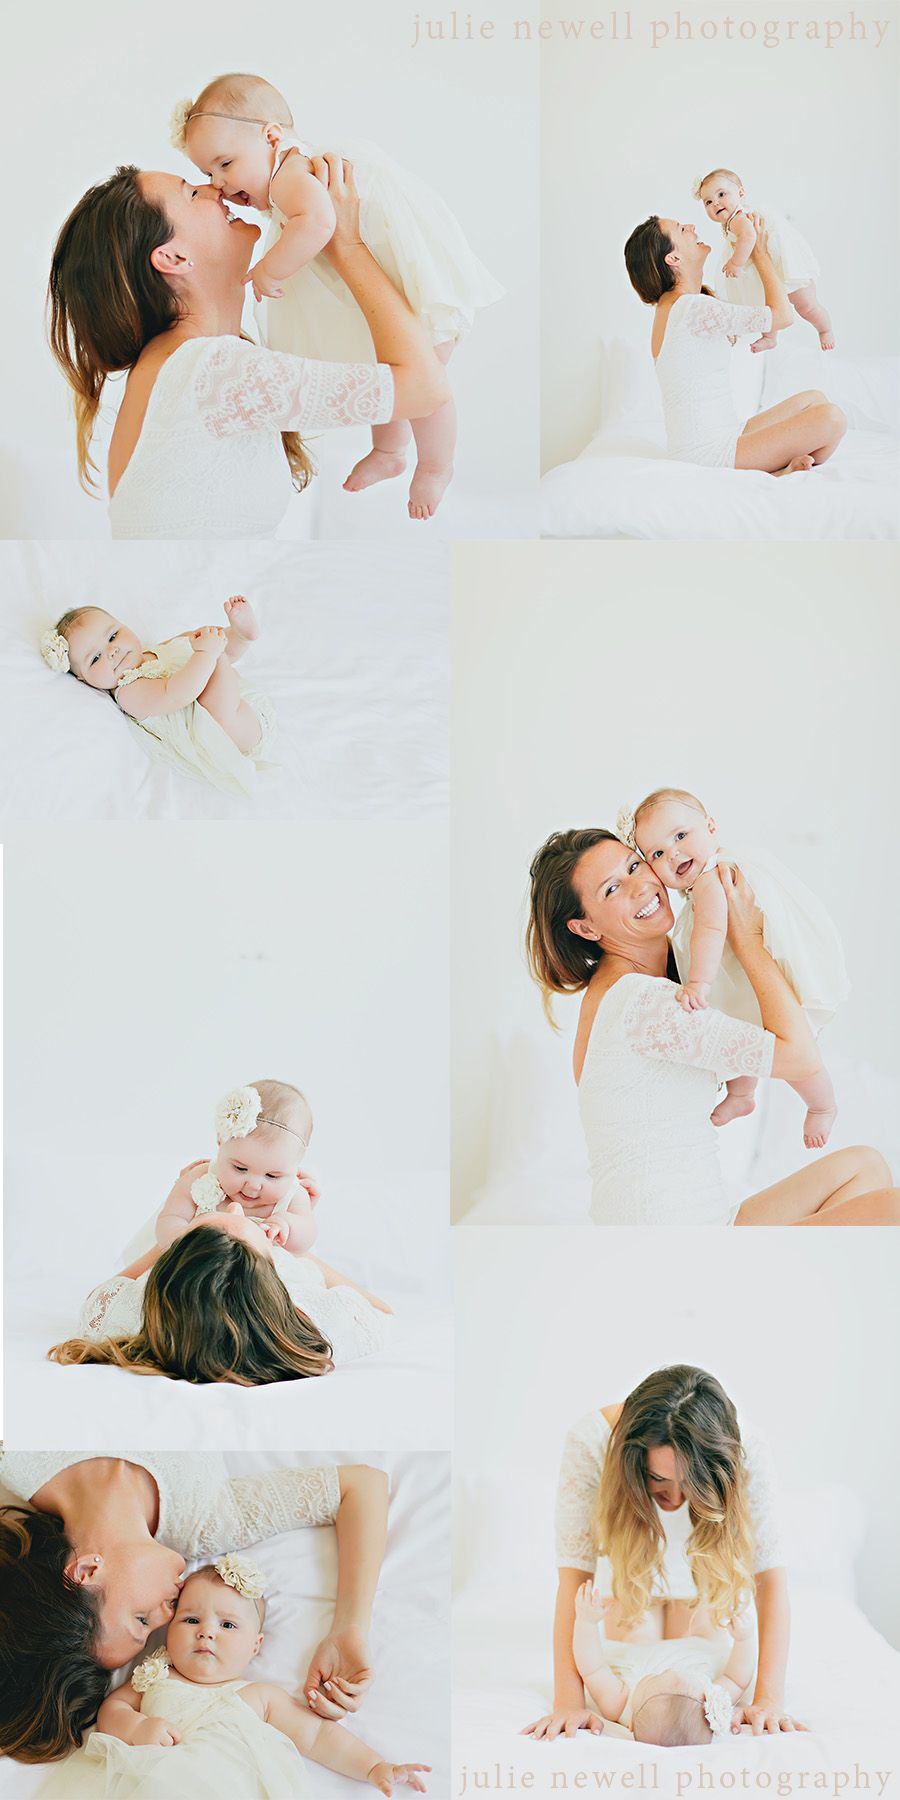 I am so happy to share this beautiful session appropriately the day before Mother's Day. I so enjoy capturing the love, bond and connection between a mother and child. There was no shortage o…